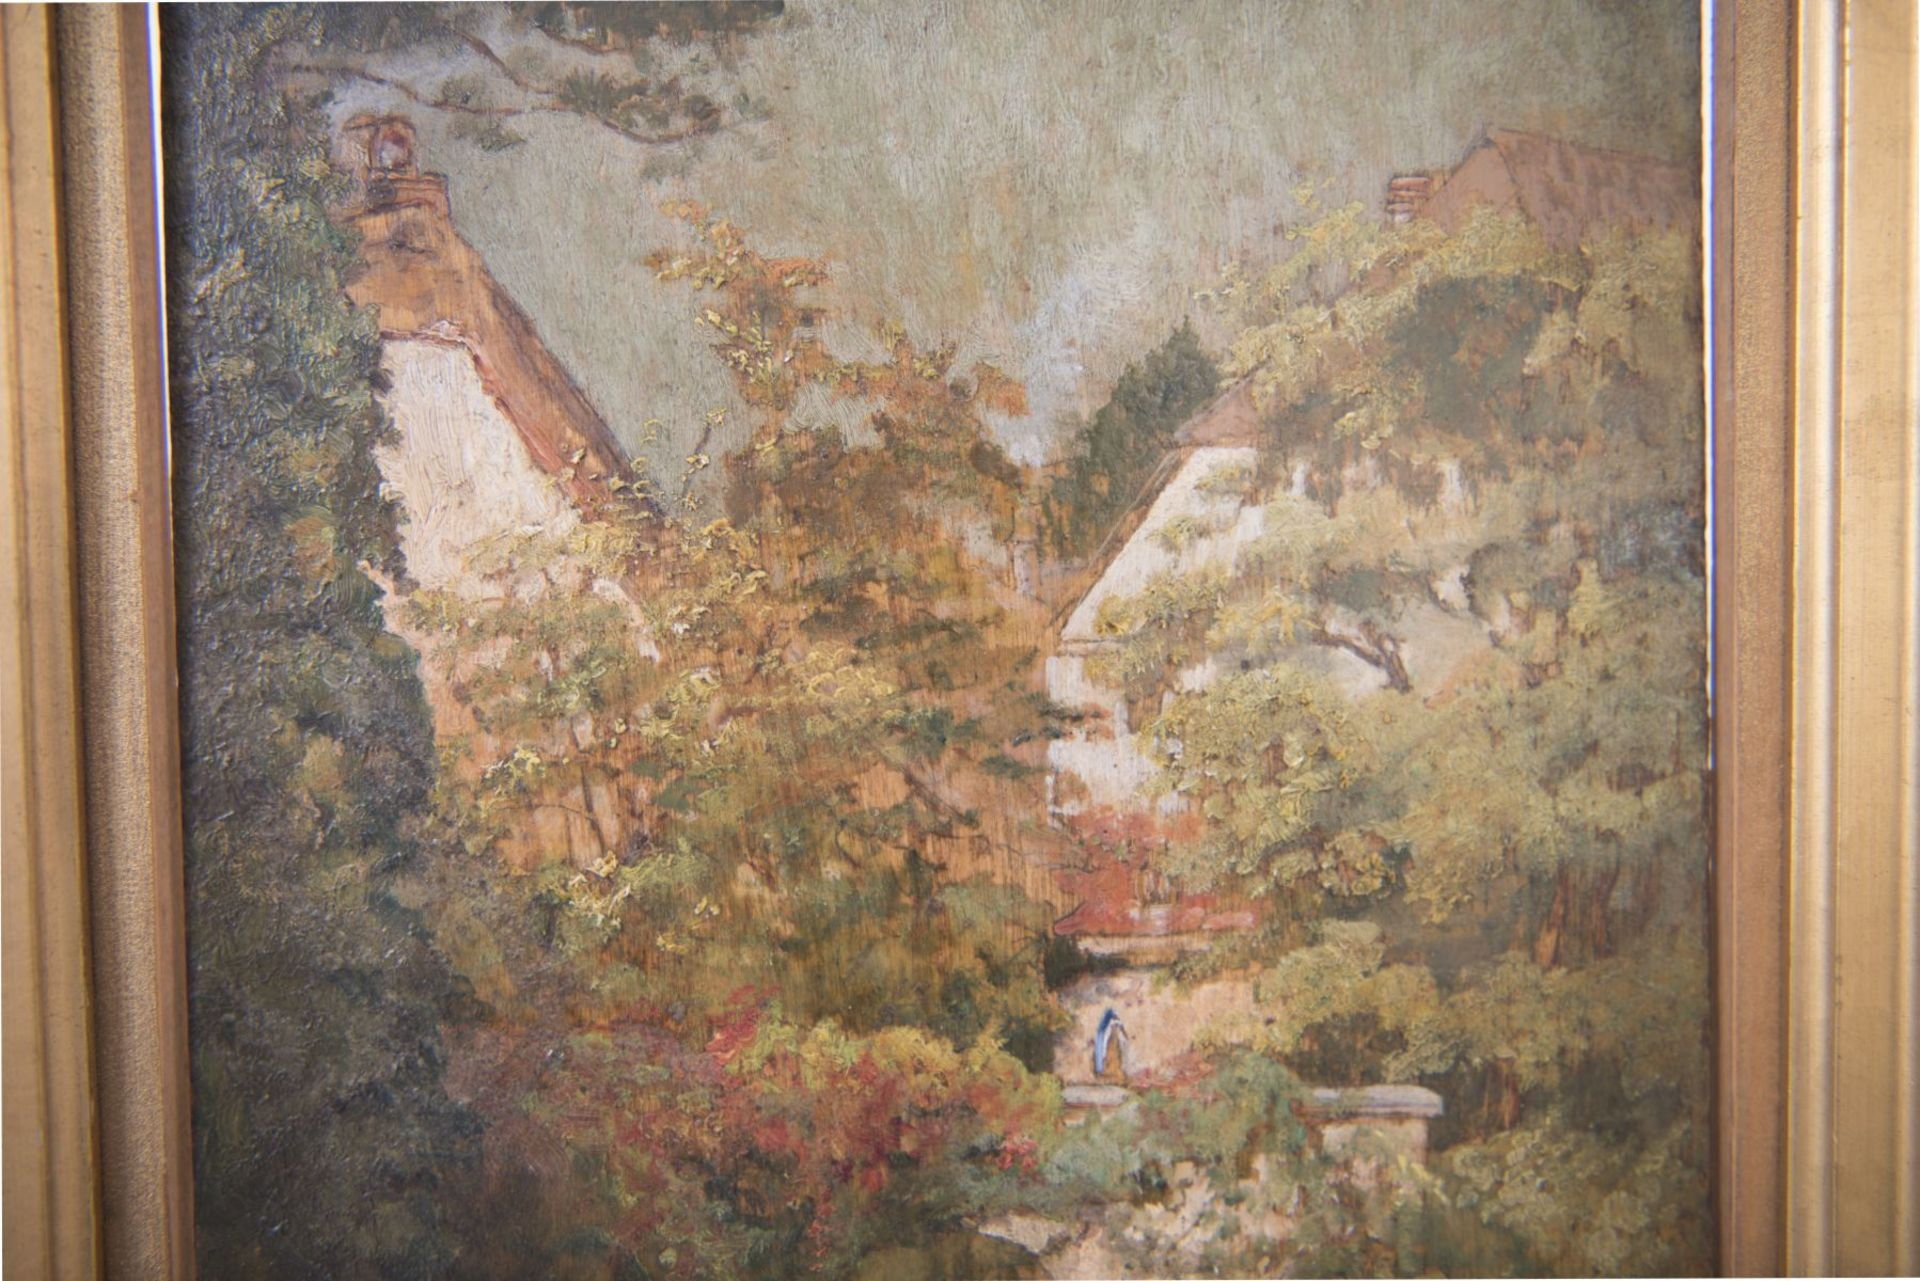 Impressionistic view of two houses by a river, late 19th century - Image 2 of 6